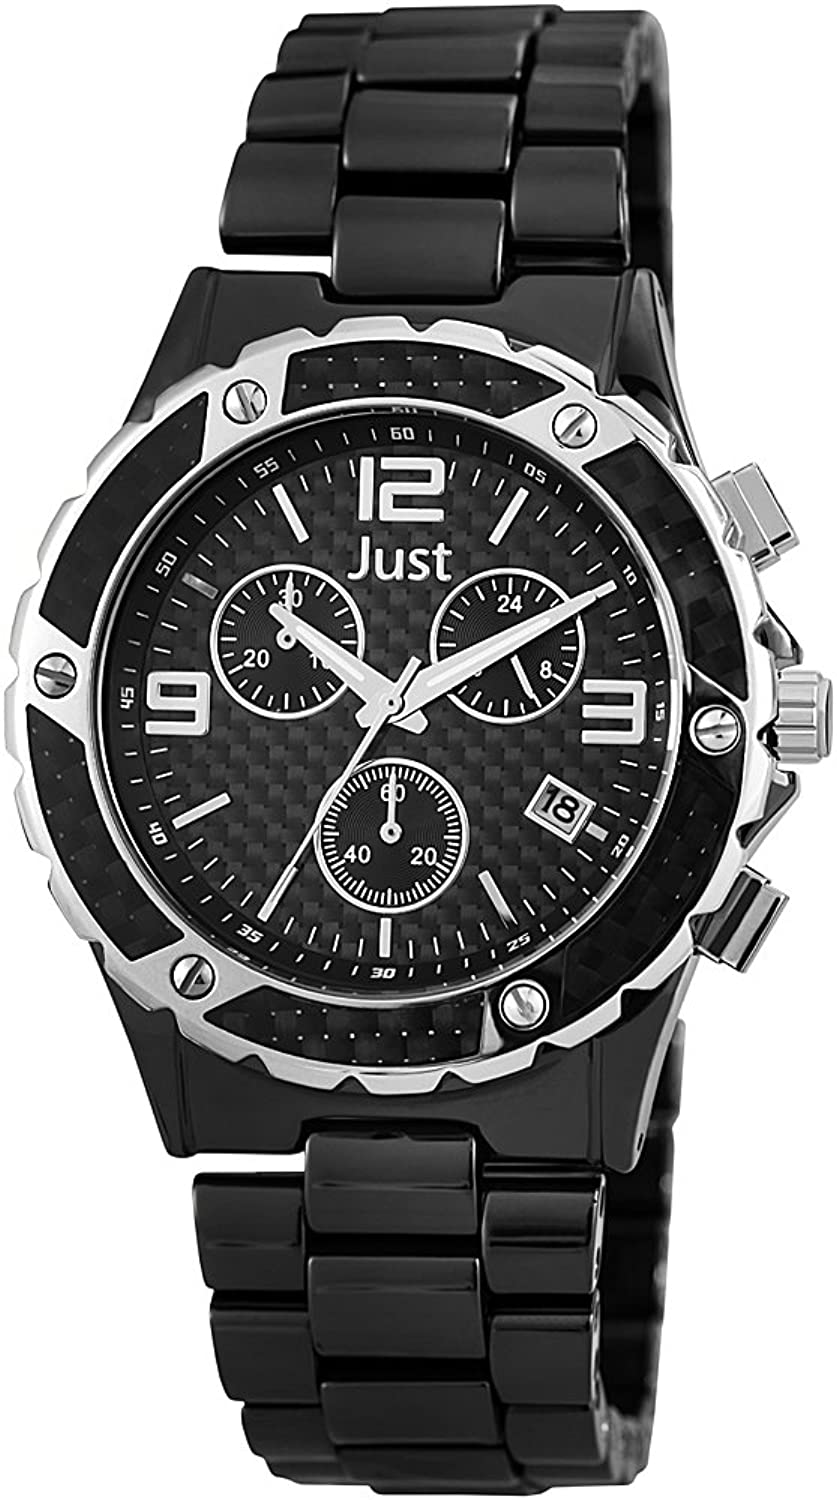 Just Watches Herren-Armbanduhr XL Chronograph Quarz Keramik 48-S0006-BK